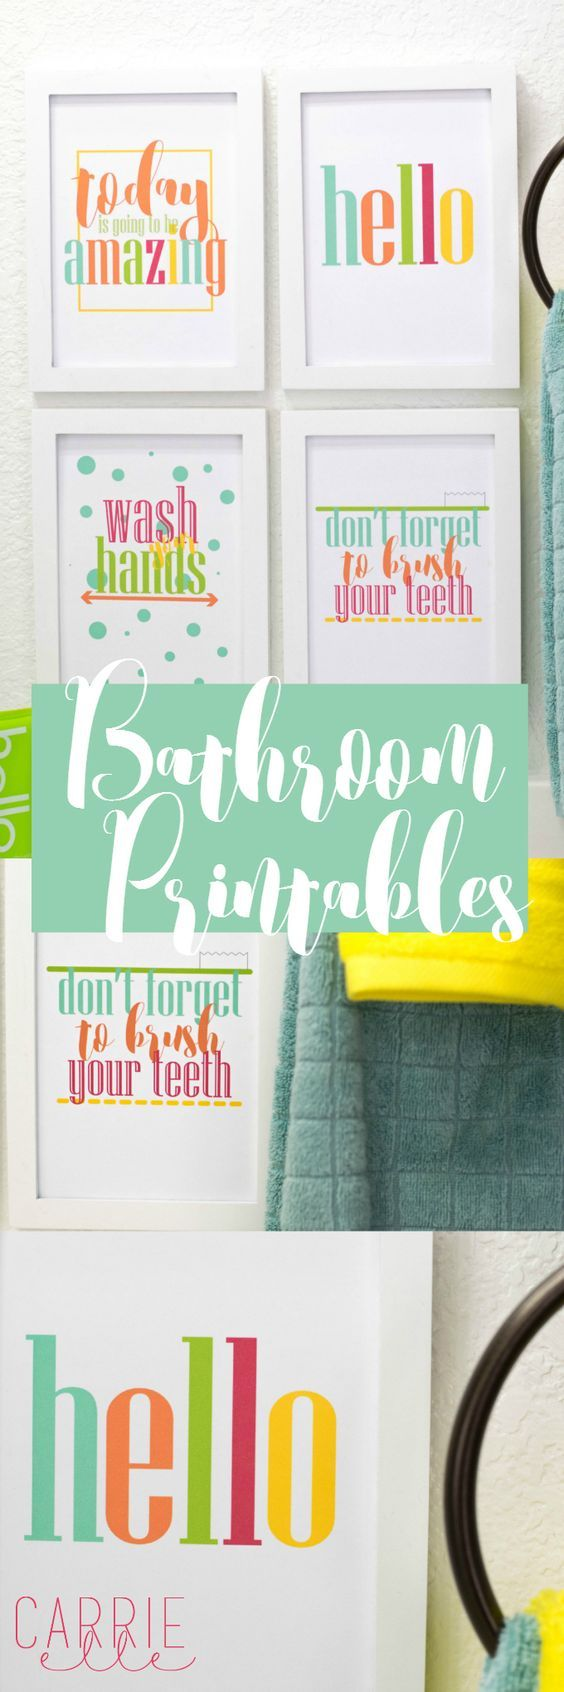 Brighten up your bathroom with these cheerful and happy bathroom printables. These are great for the kids' bathroom, but I love them for my own, too! #choosefriendly sponsored by hello products